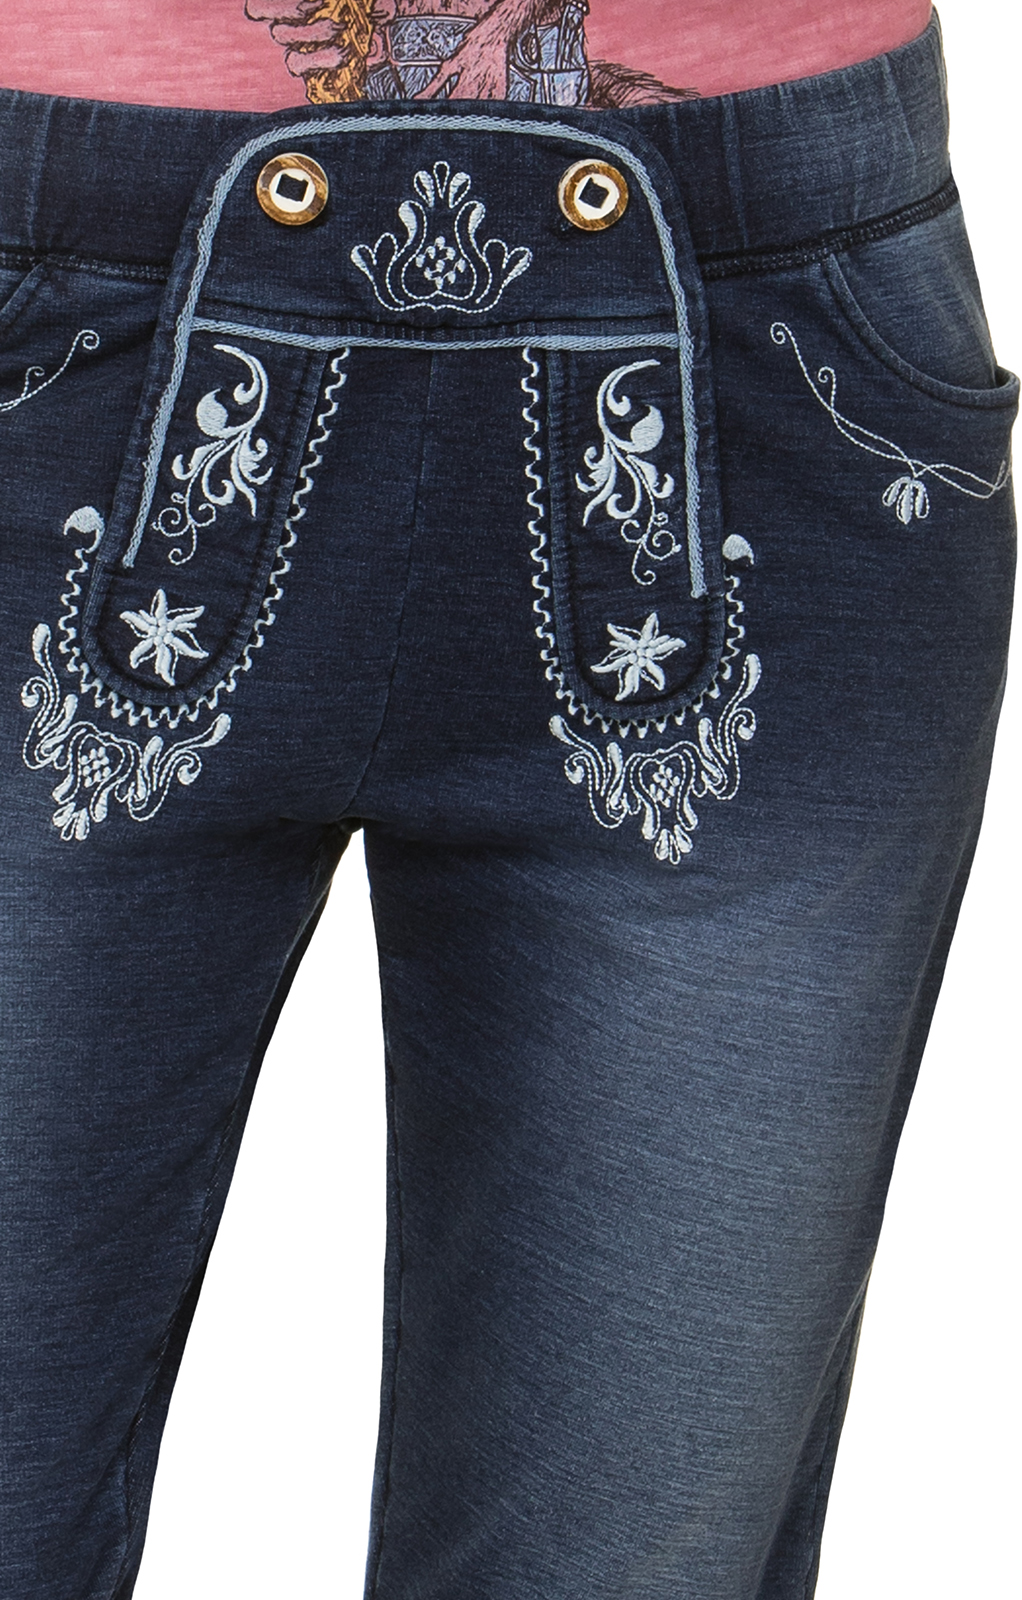 weitere Bilder von Trachtenhose Kniebund workout Jogging ASHLEY denimblue